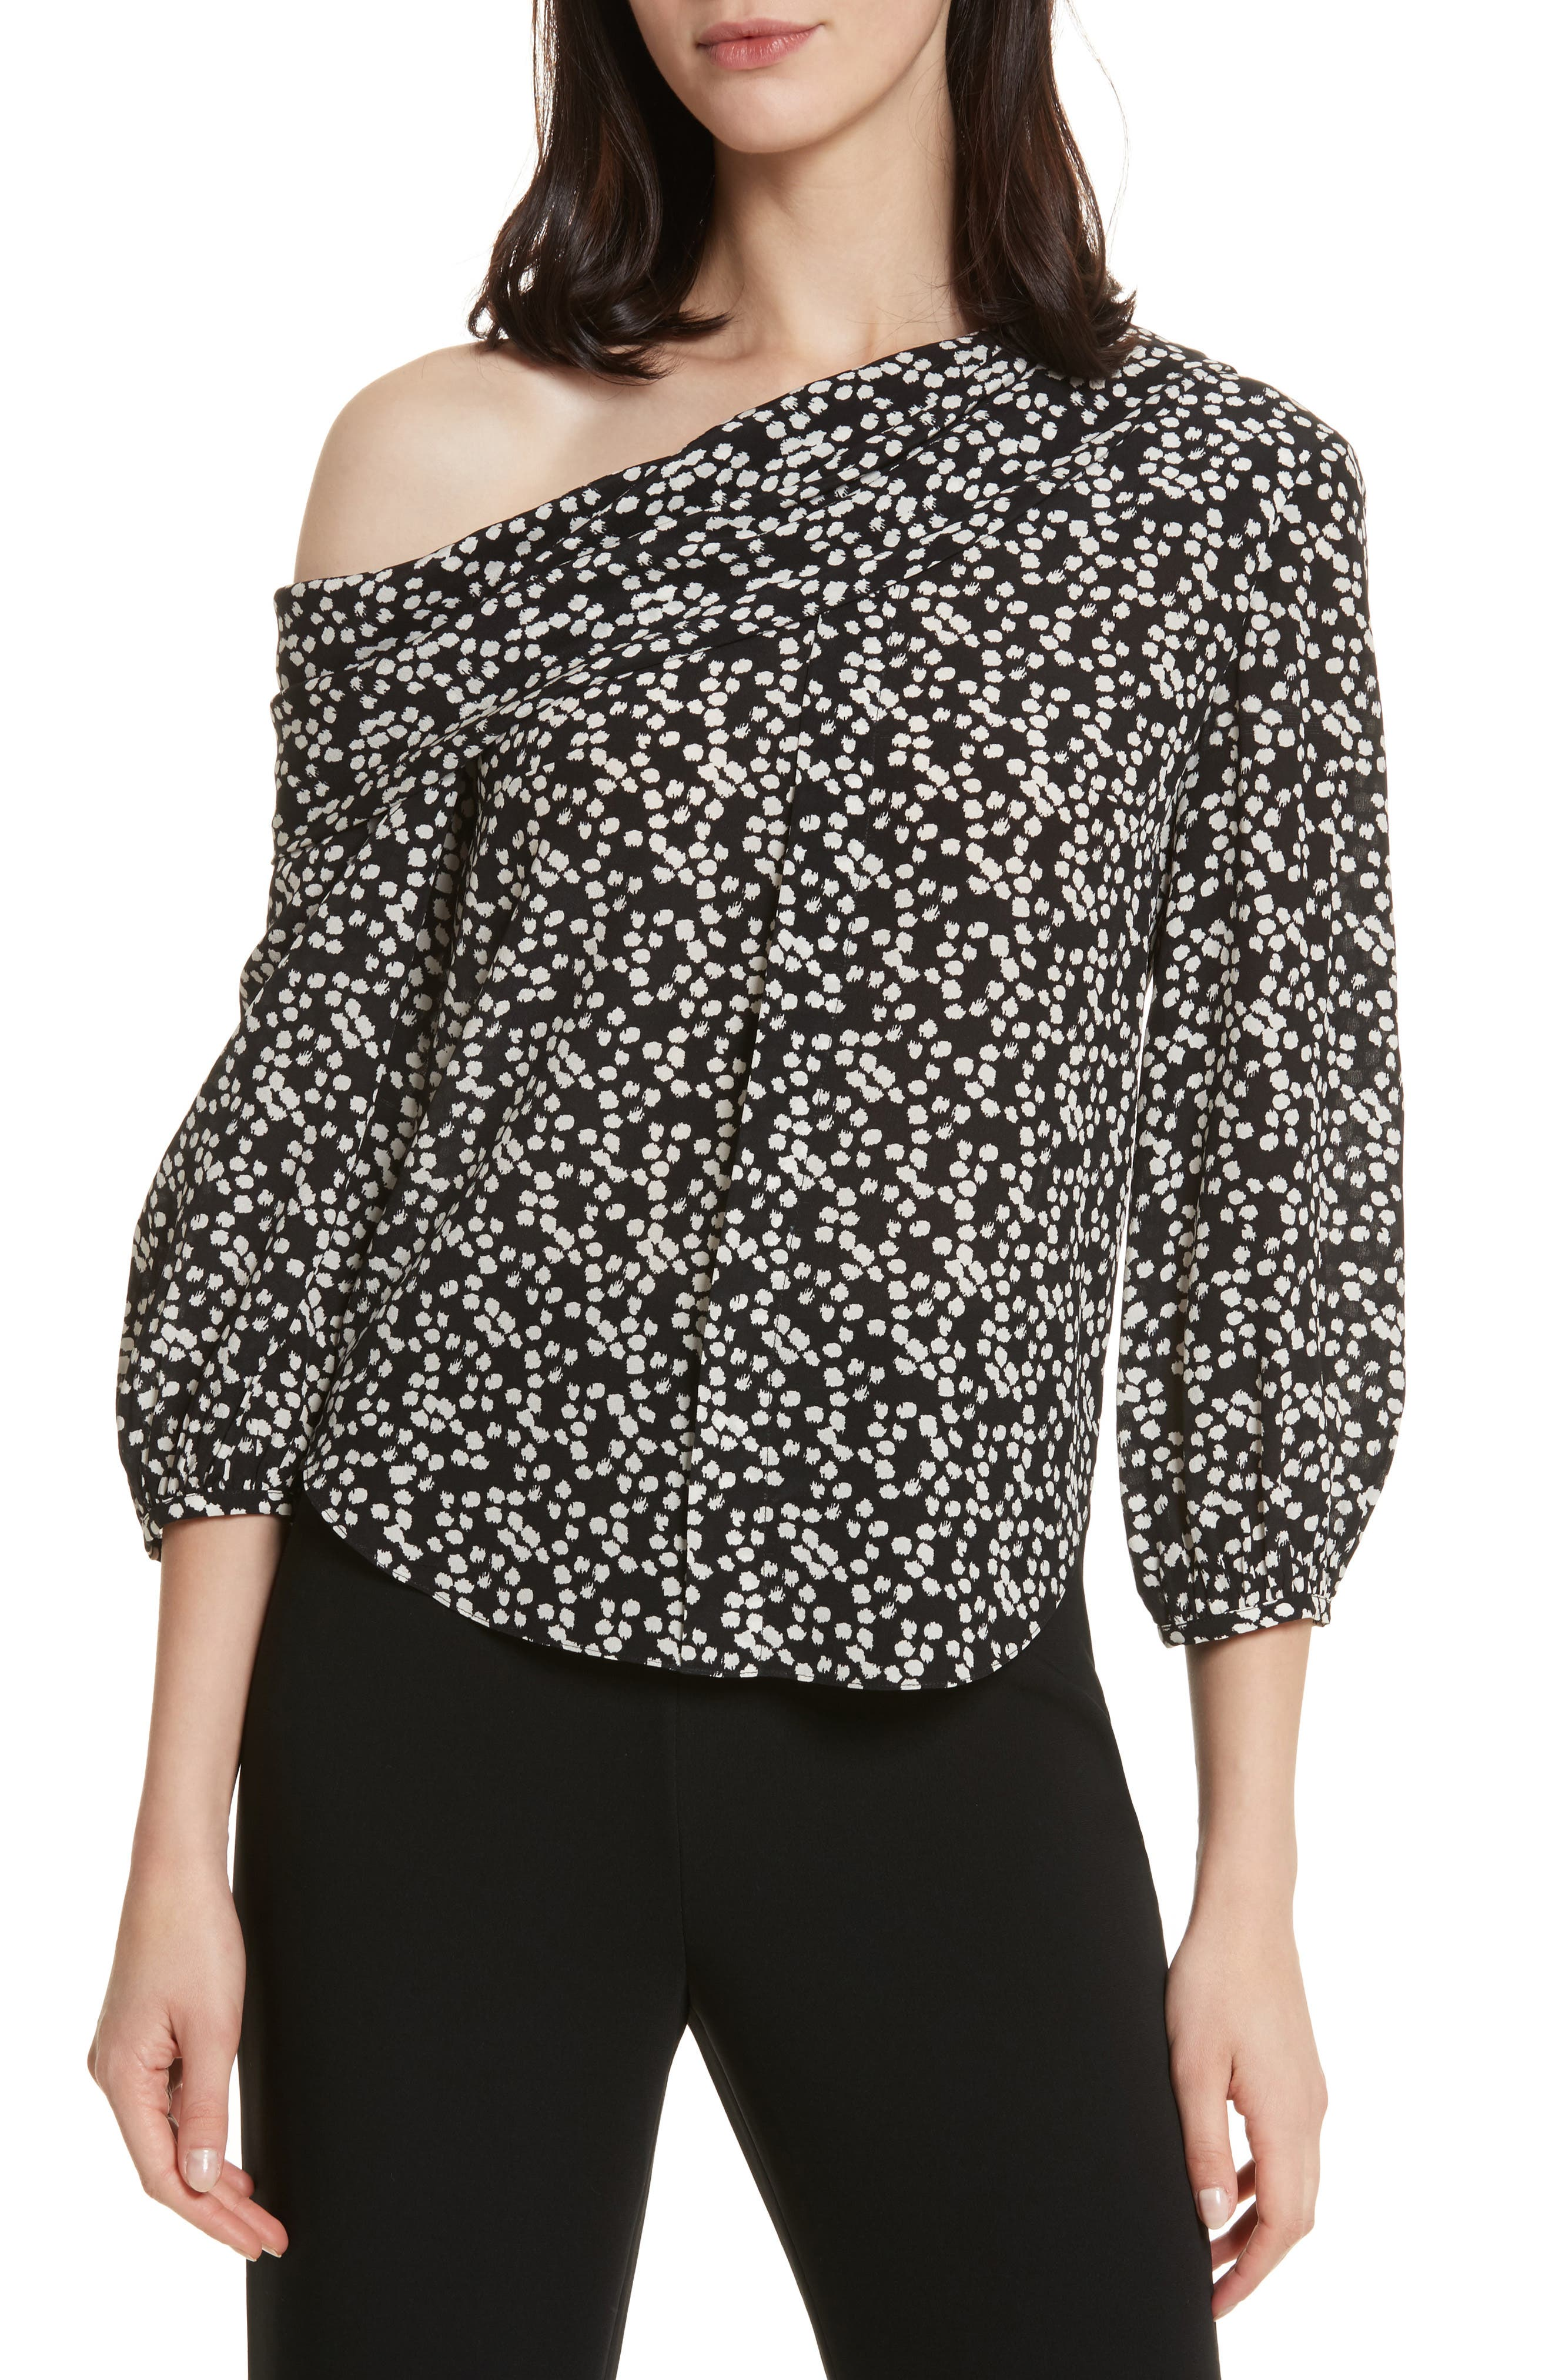 Ness Print Silk Off the Shoulder Top,                             Main thumbnail 1, color,                             005